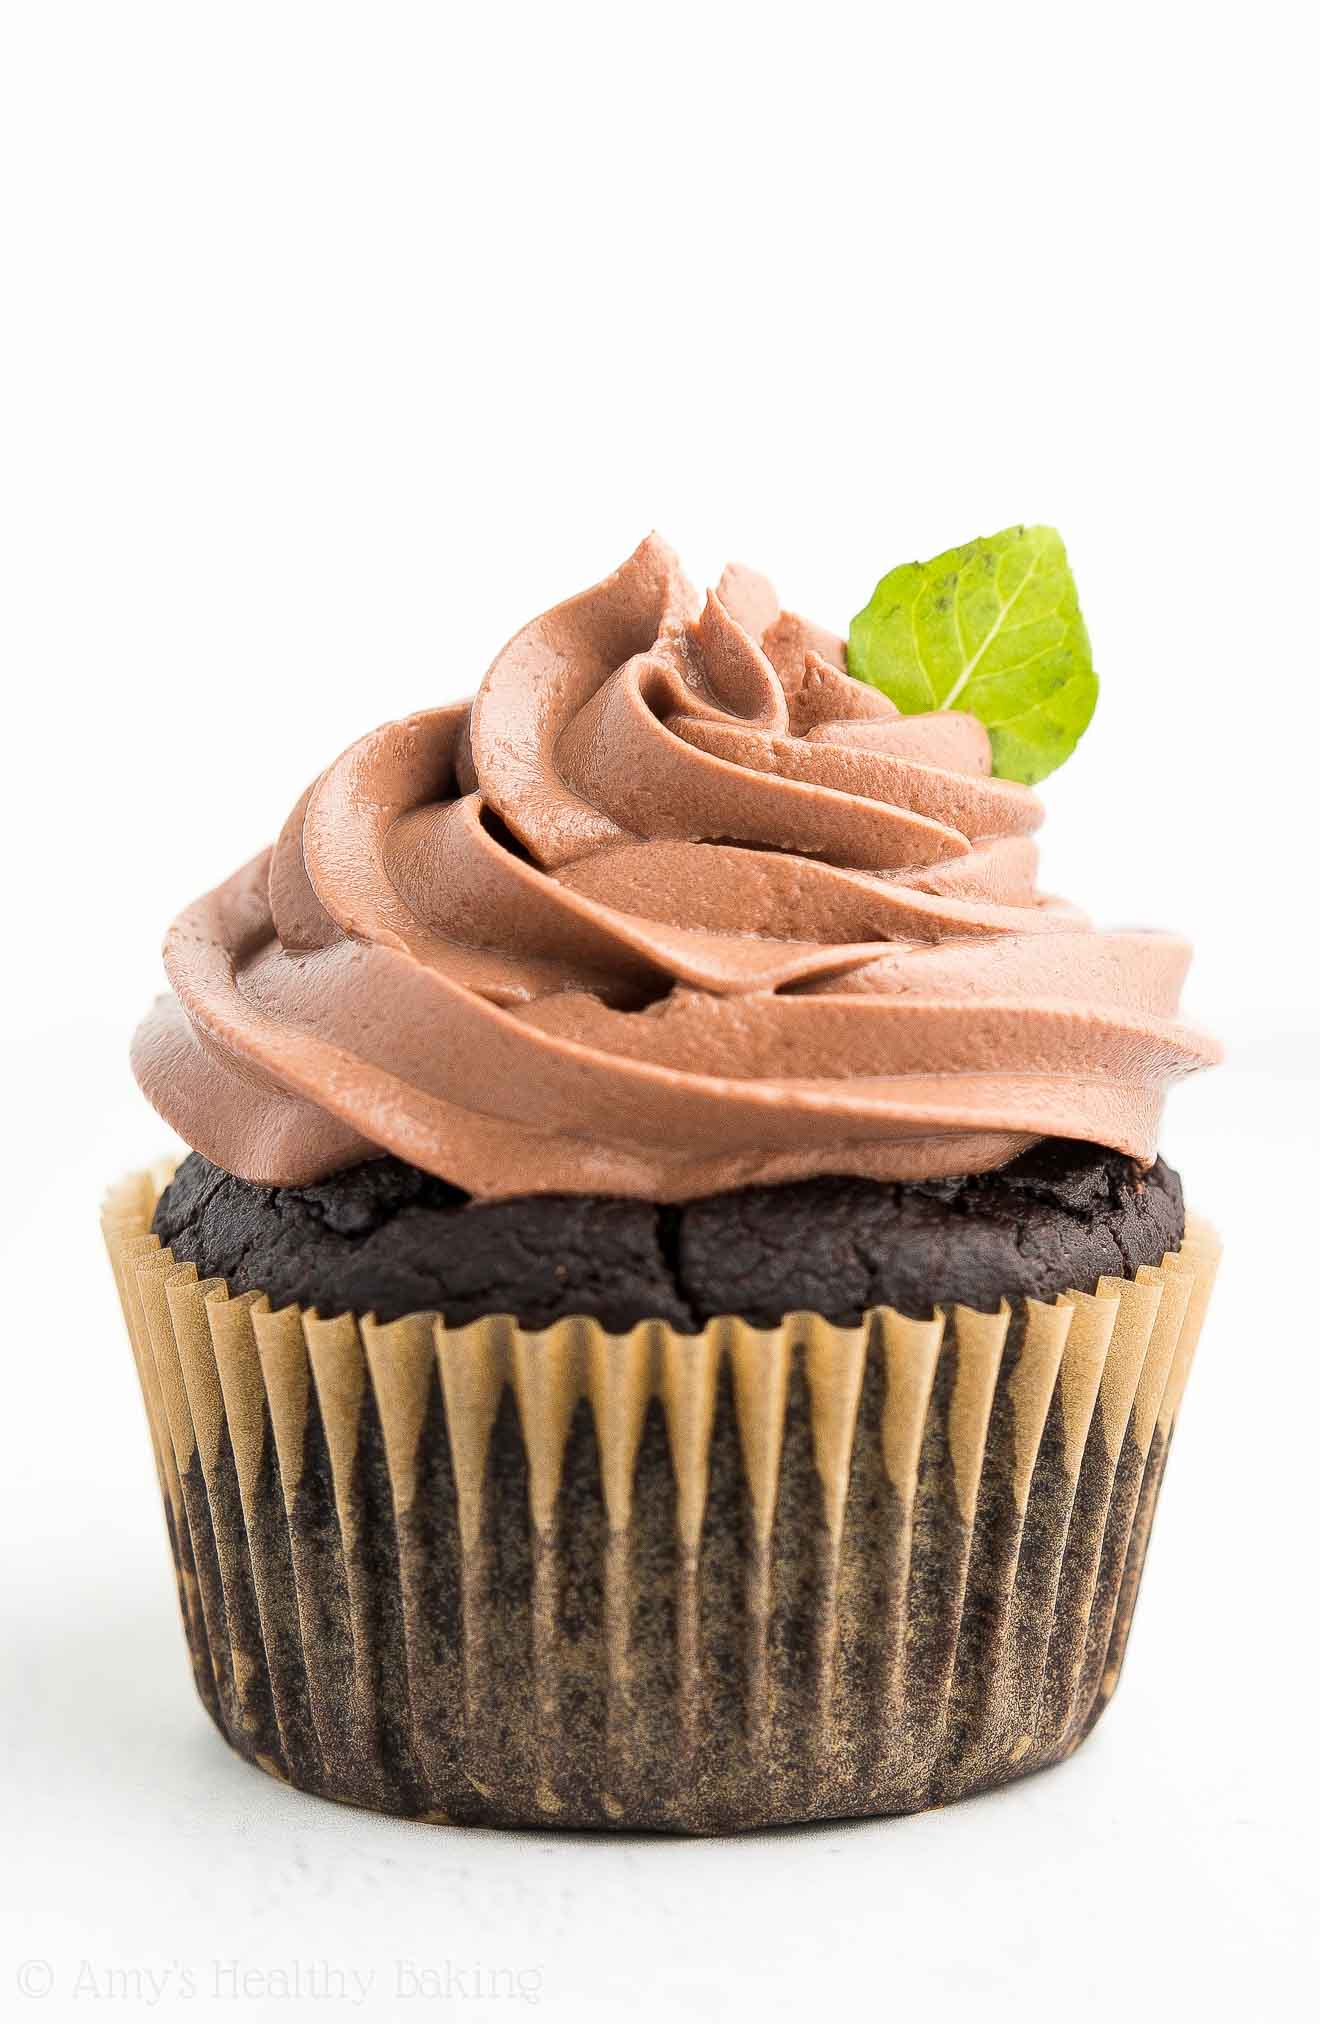 A Homemade Healthy Mint Chocolate Cupcake with Chocolate Frosting